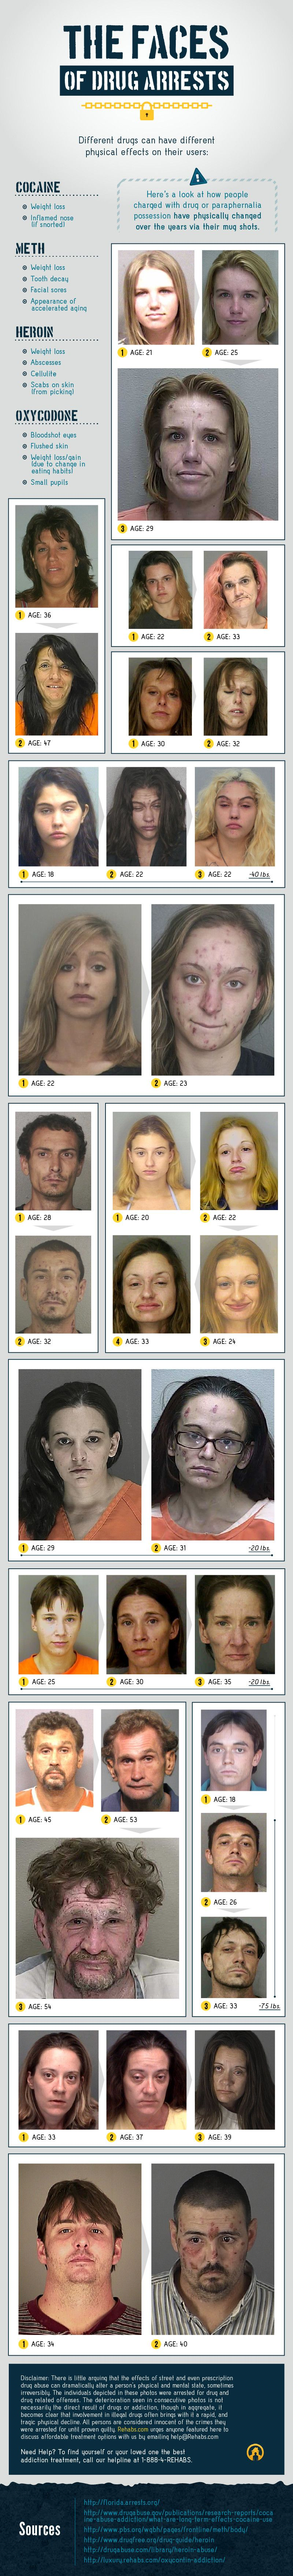 These Photos Show How Heroin, Cocaine and Oxycodone Change Your Appearance Over Time | TIME.com